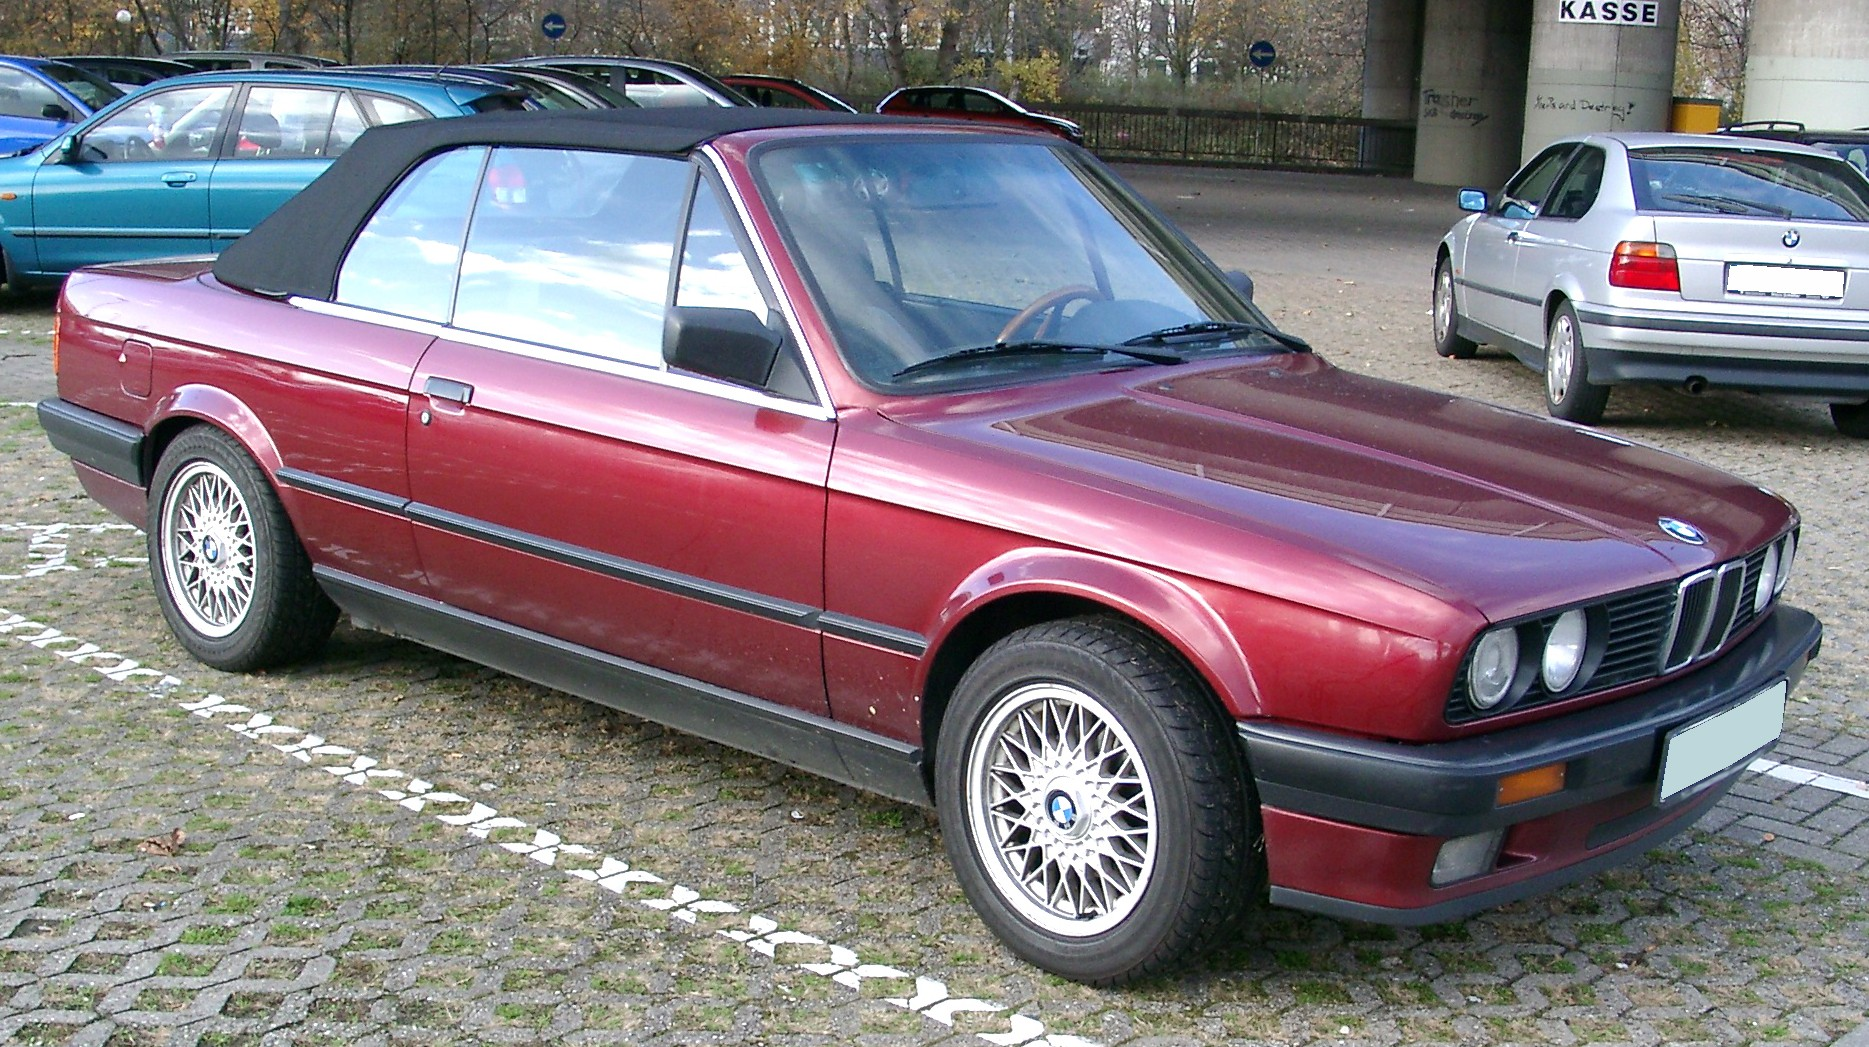 file bmw e30 cabrio front wikimedia commons. Black Bedroom Furniture Sets. Home Design Ideas